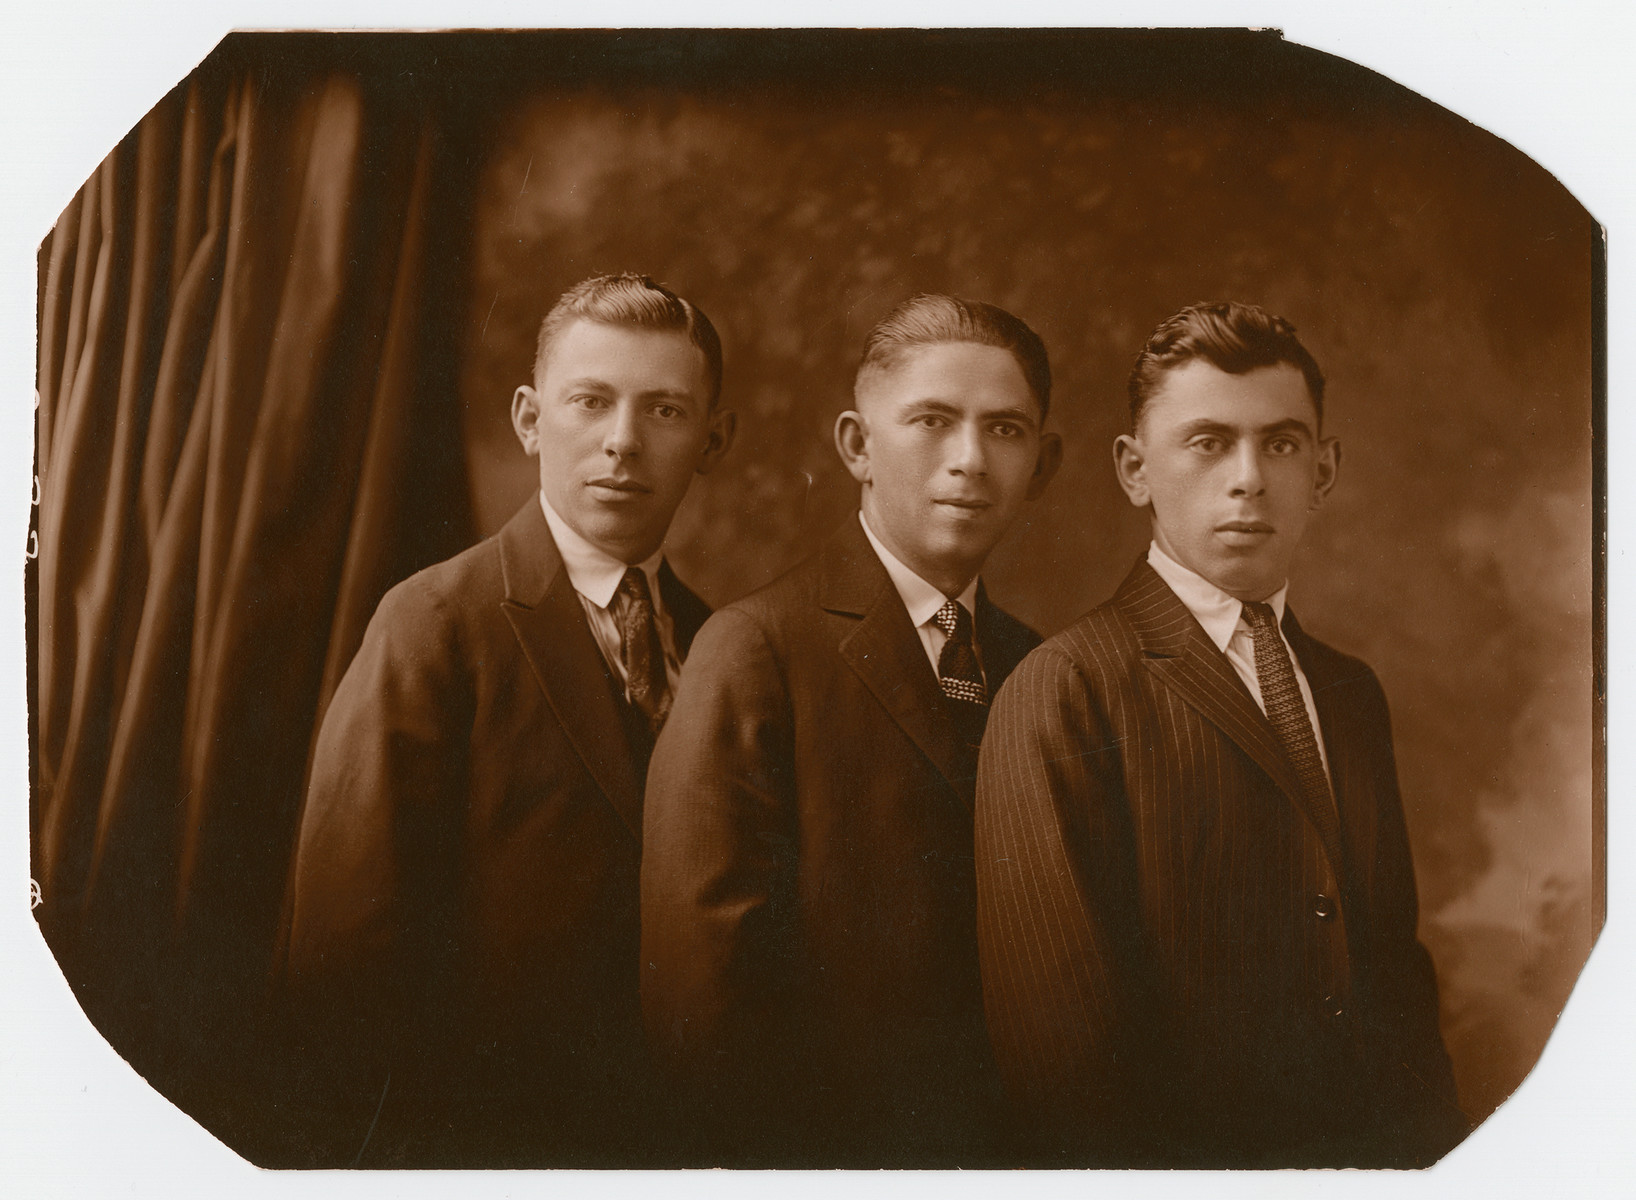 Studio portrait of Julius Ball with his brothers Jacob and Chaim.  Chaim later perished in the Holocaust.  Julius and Jacob immigrated to the United States before the war.